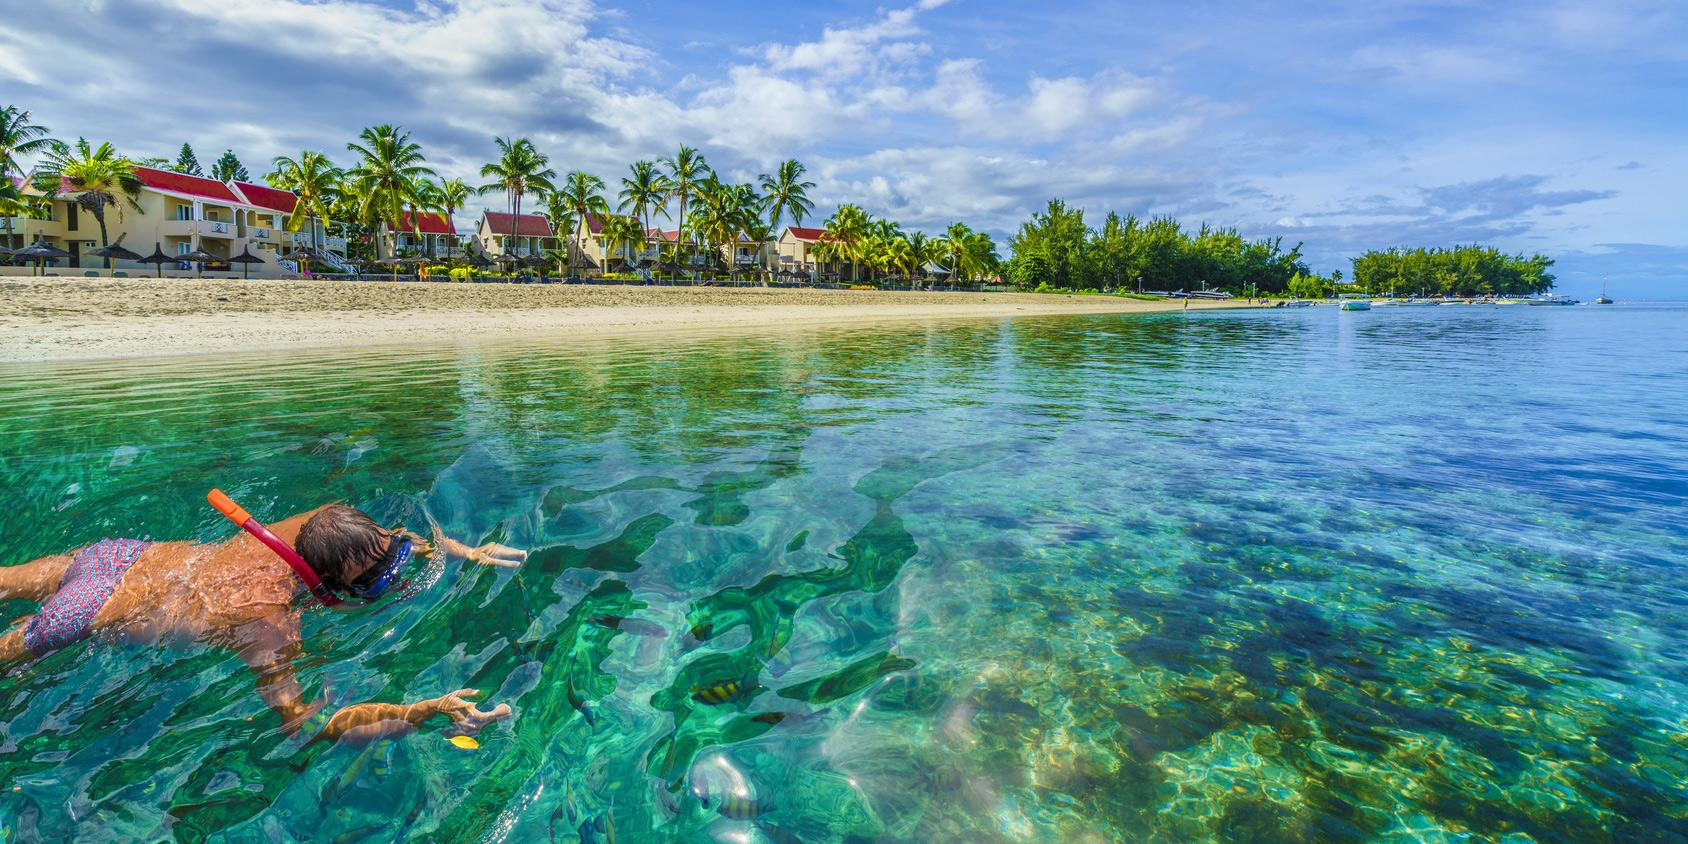 Calm waters in the north and west are well suited to snorkeling.